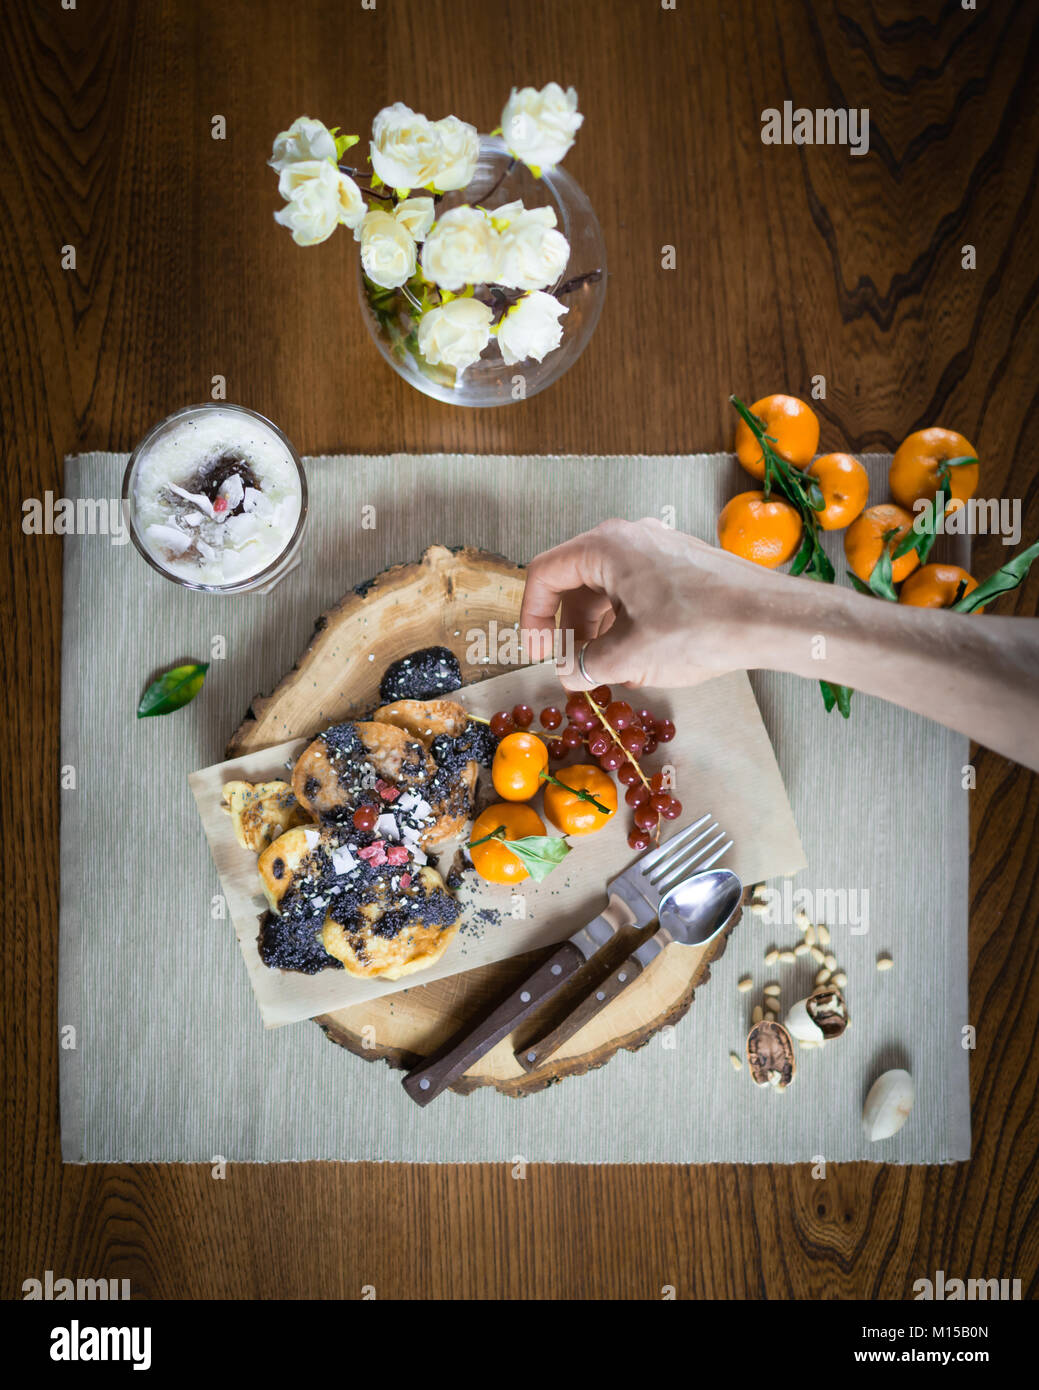 Woman hand decorates dish for breakfast on the wooden tray. Pancakes and parfait decorated with fruits and toppings. - Stock Image